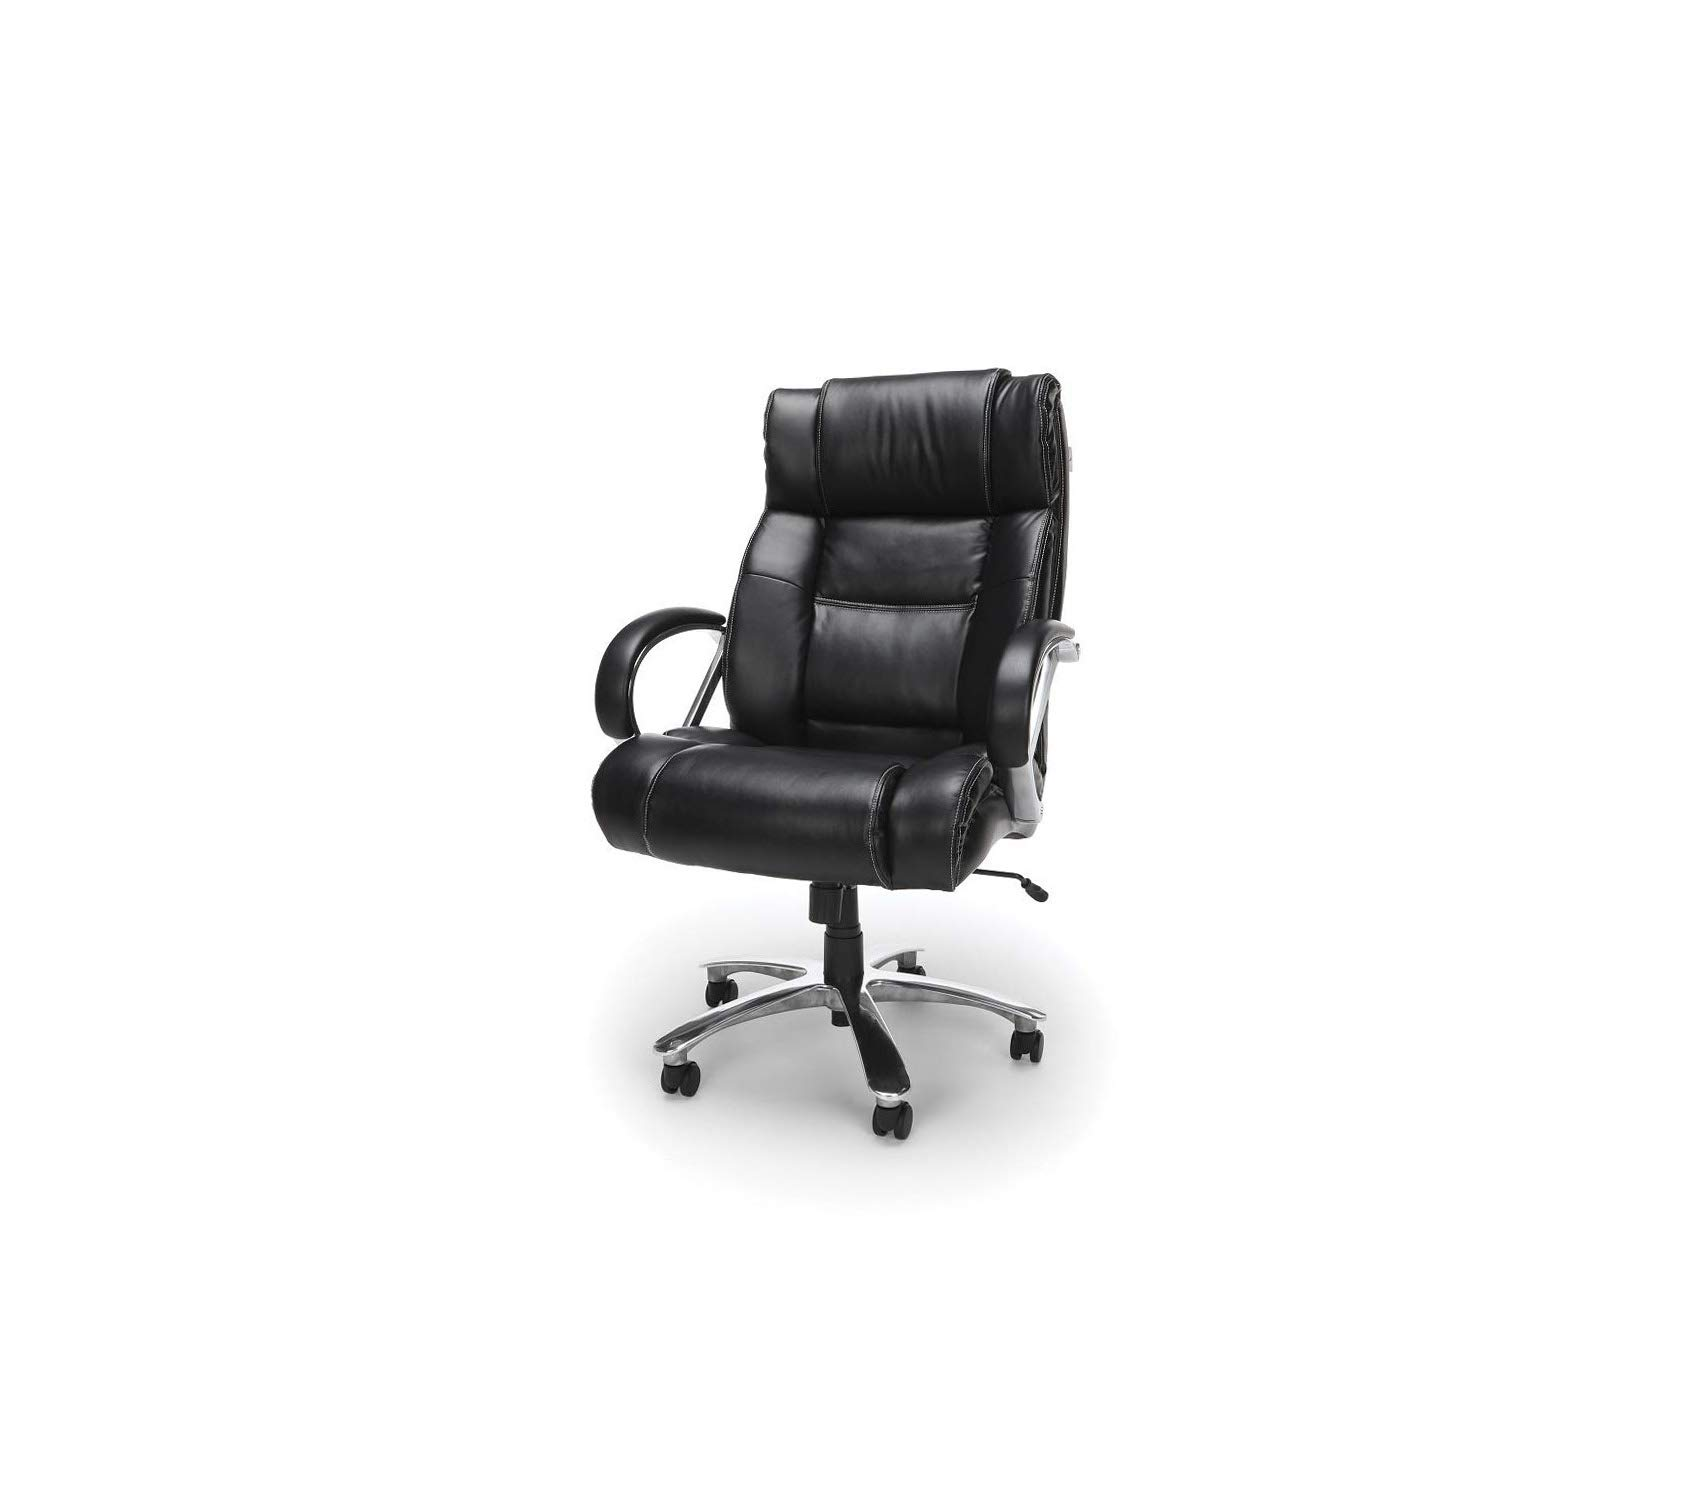 Оfm Avenger Series Big and Tall Leather Executive Chair - Black Computer Chair with Arms, Black/Chrome by Оfm (Image #1)